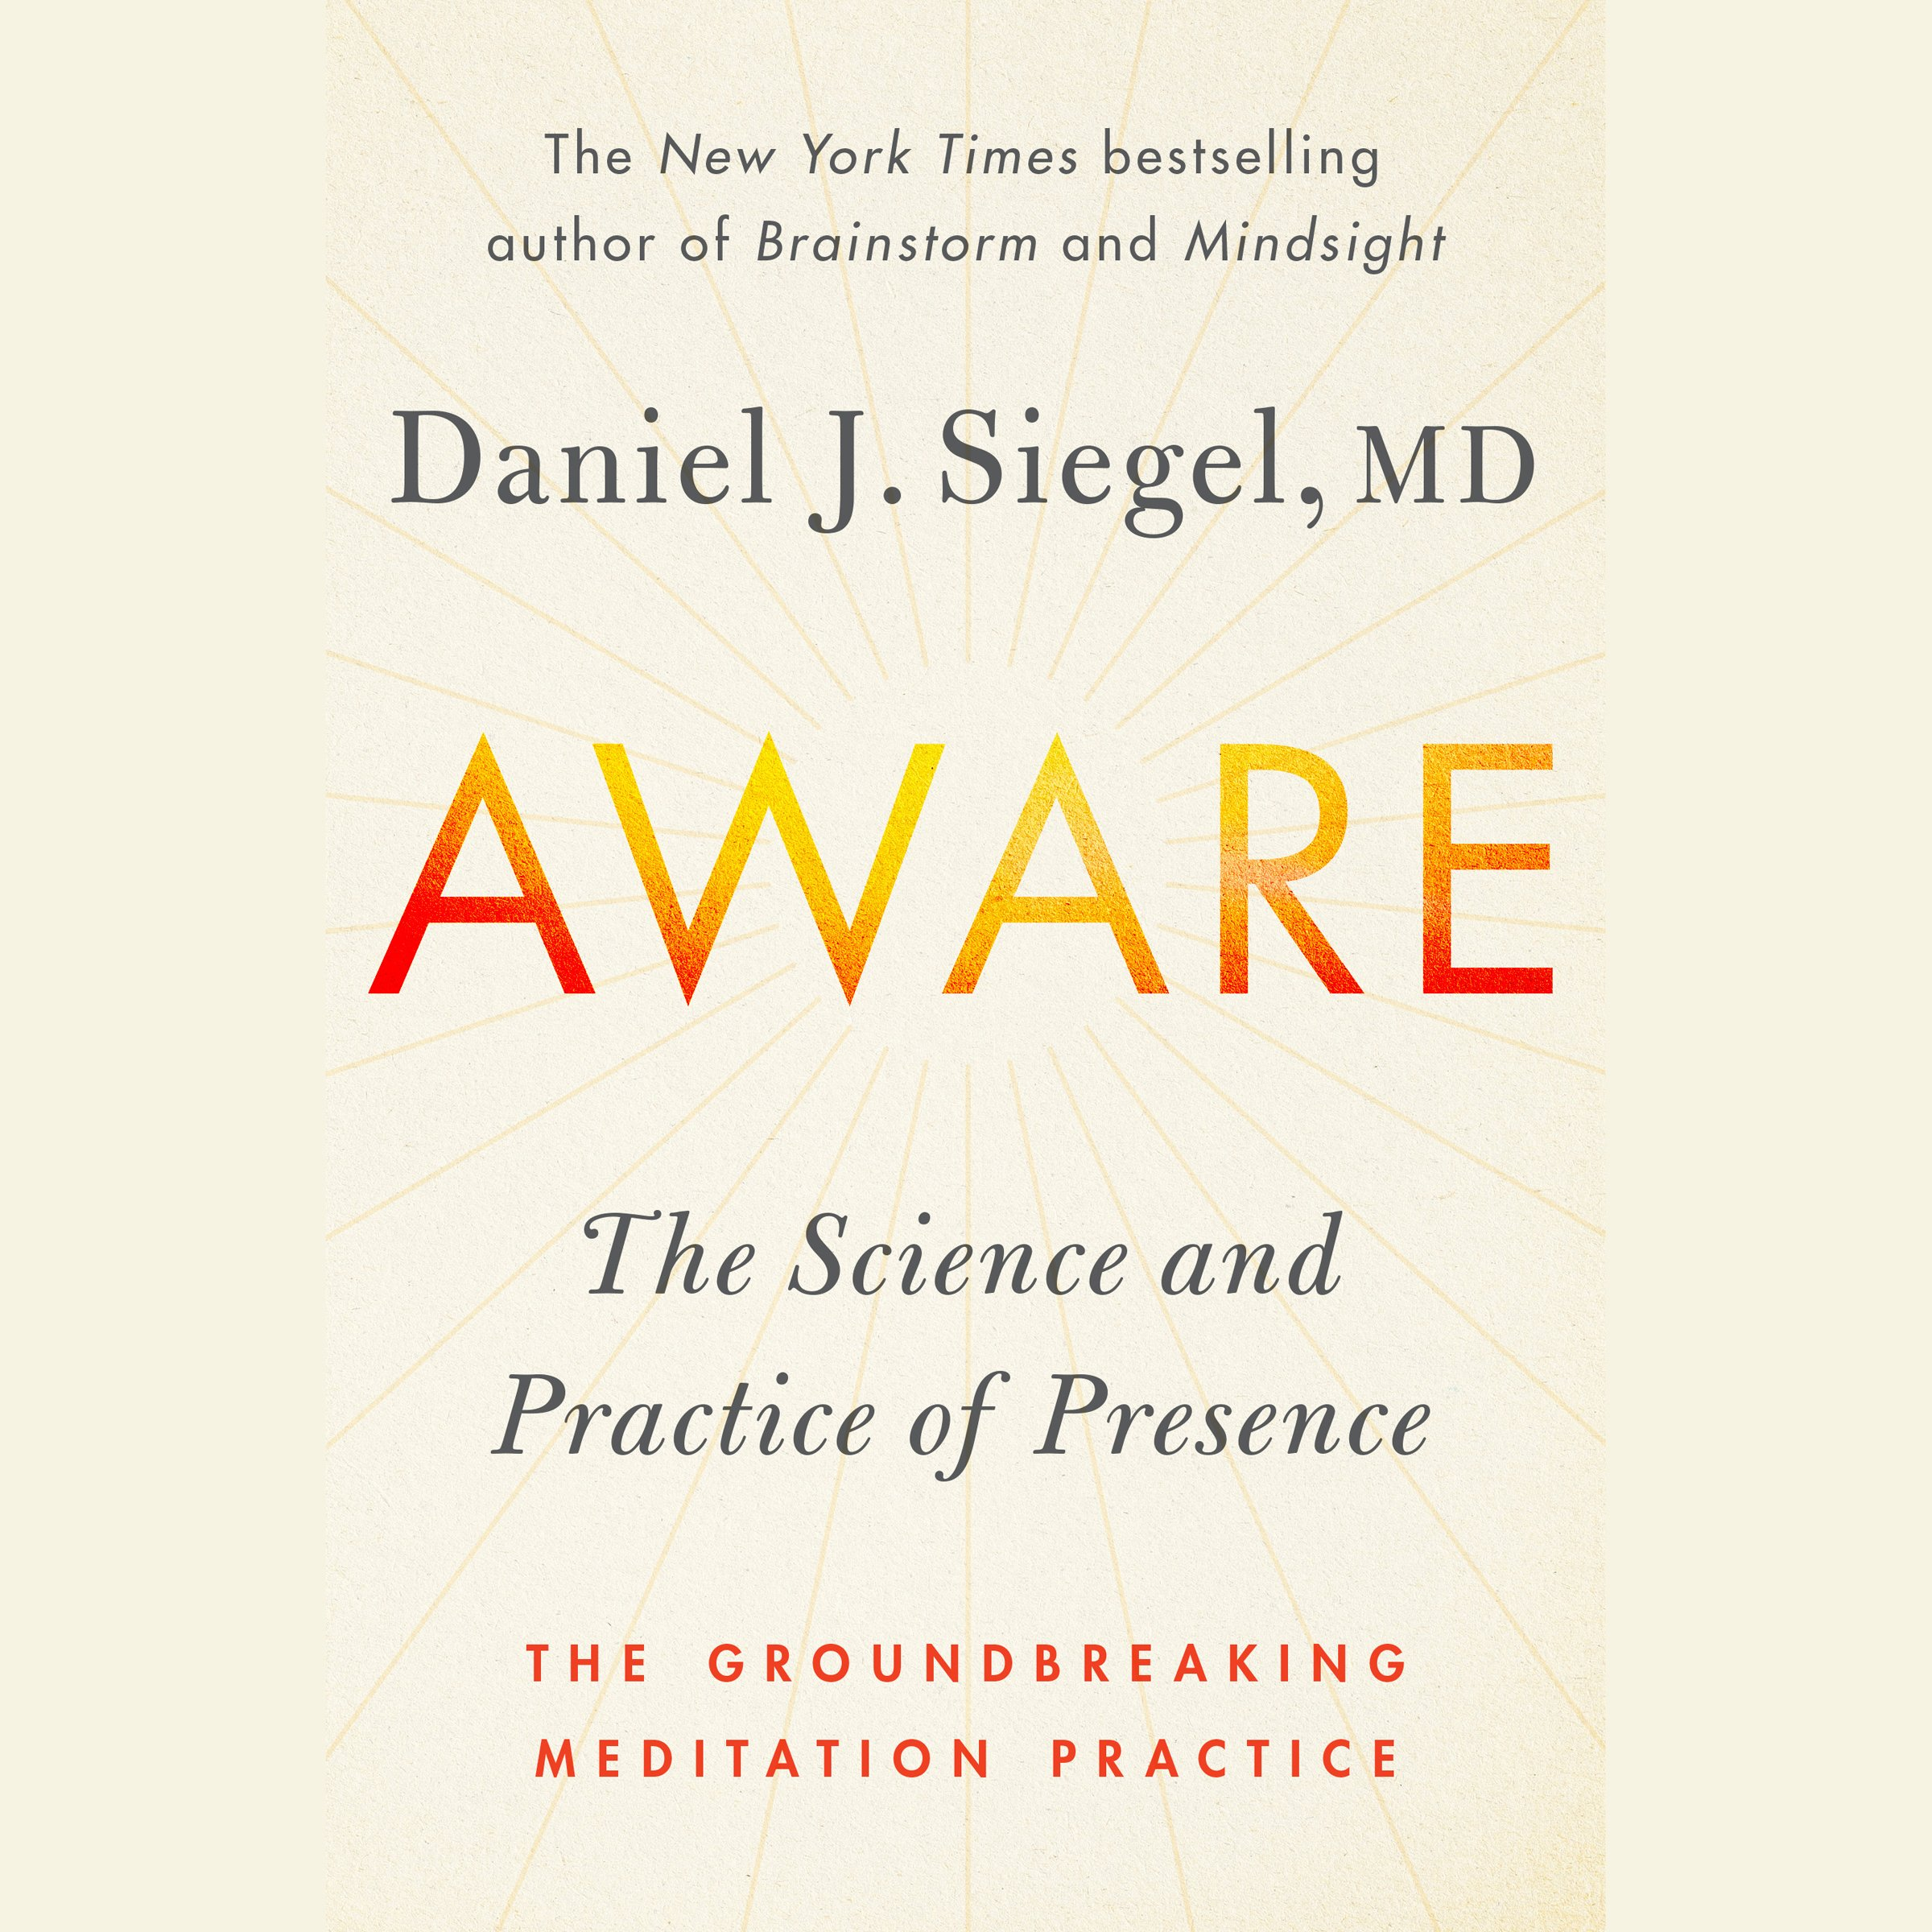 Aware: The Science and Practice of Presence-A Complete Guide to the Groundbreaking Wheel of Awareness Meditation Practice